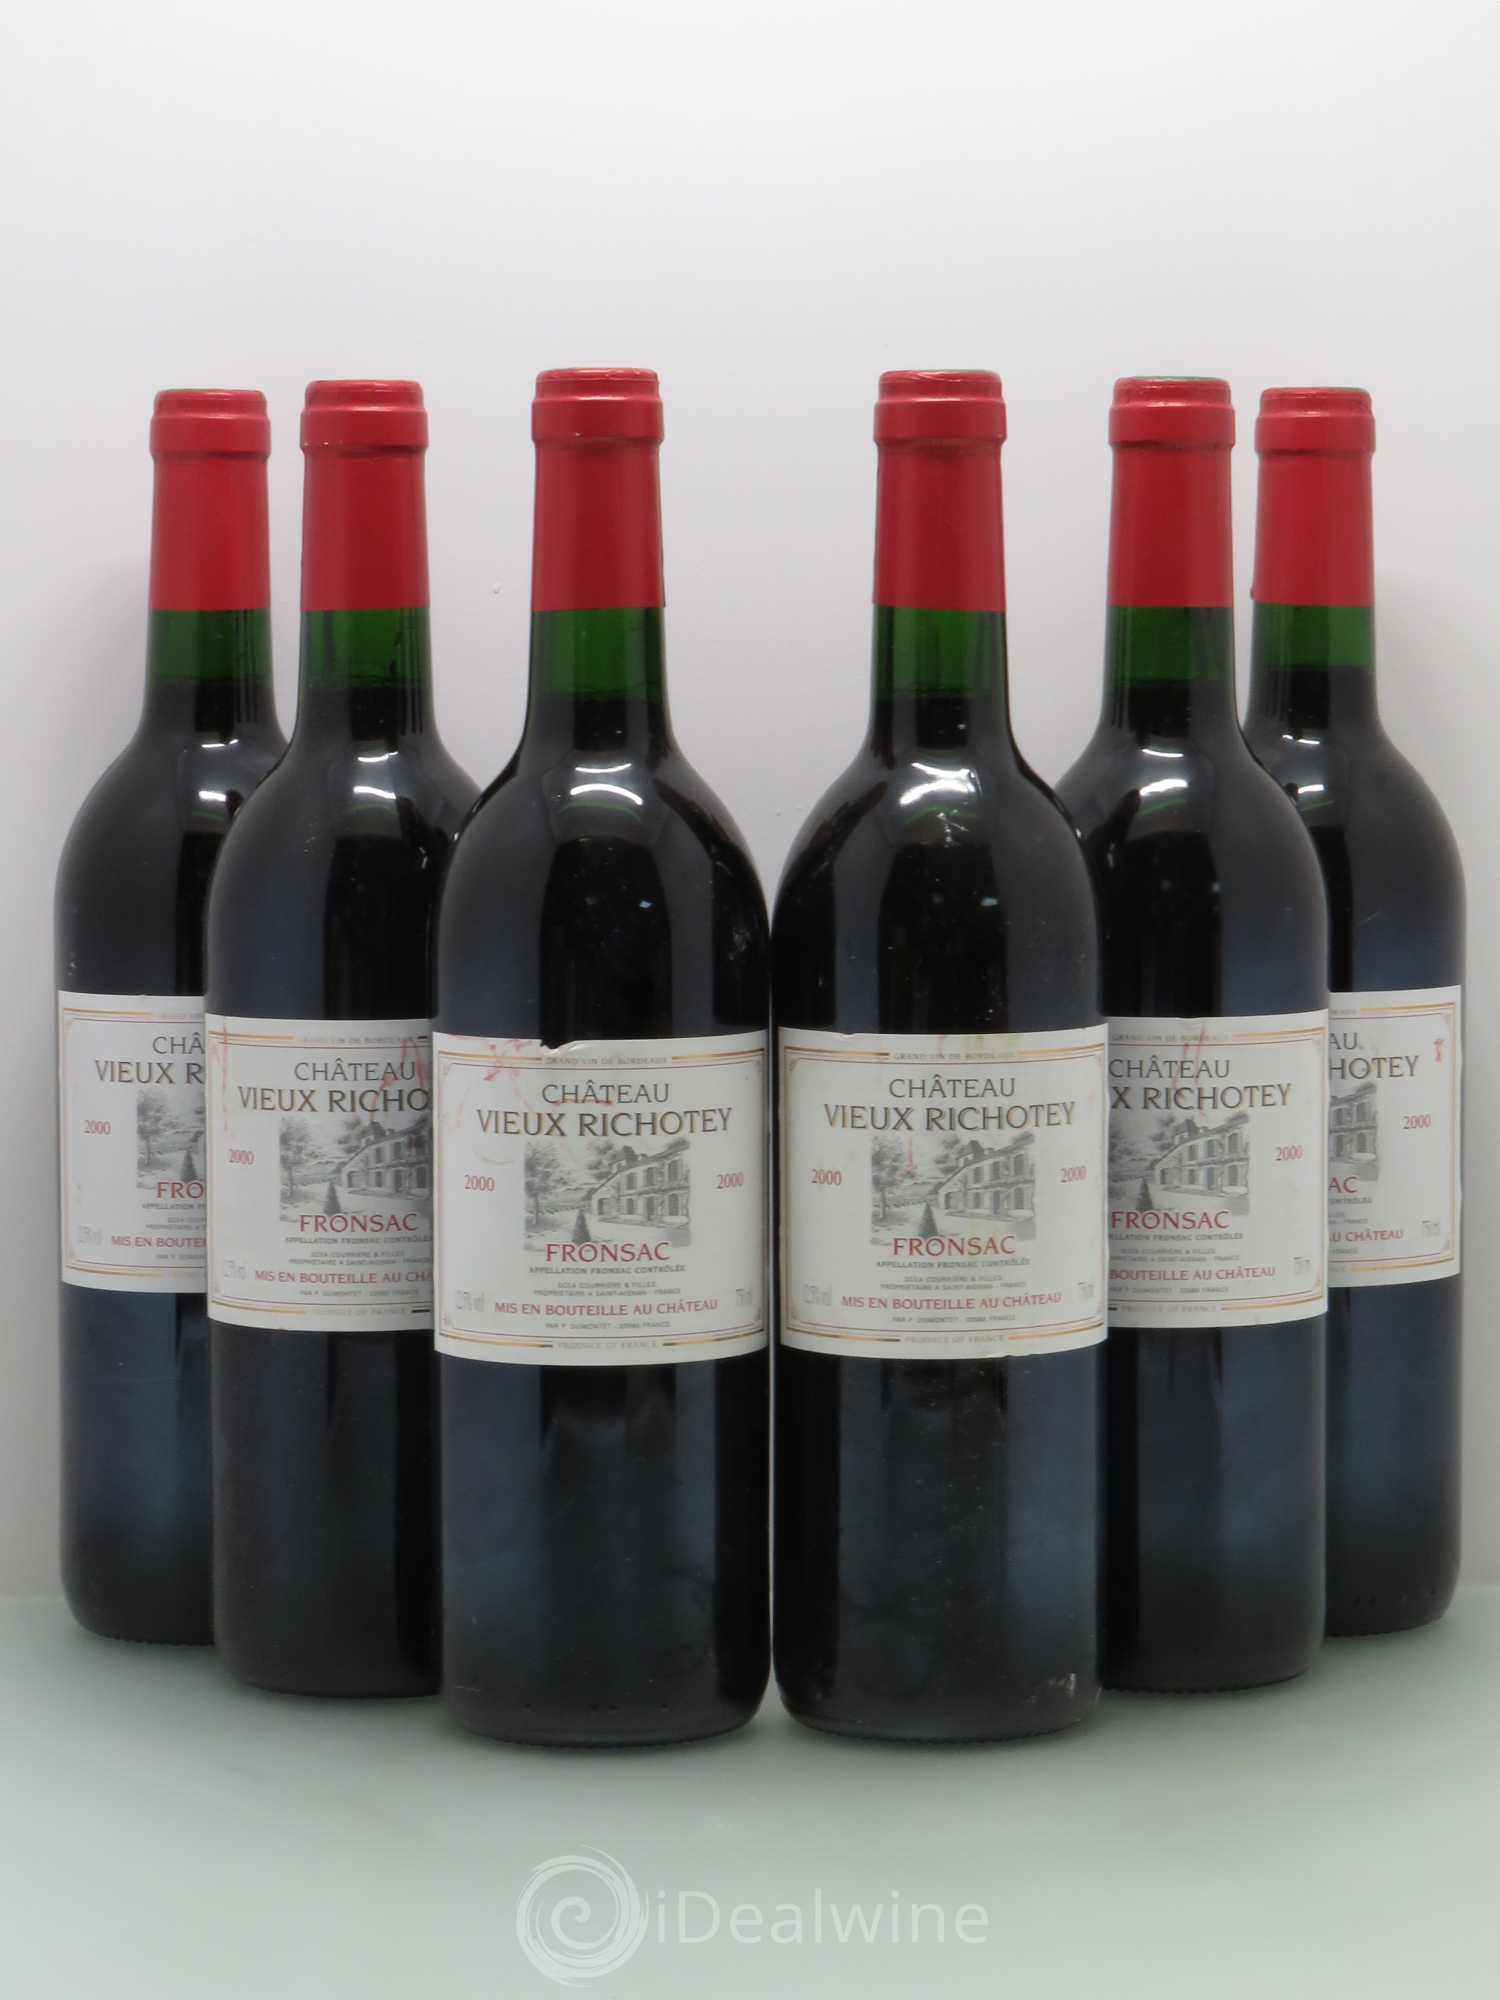 Fronsac Chateau Vieux Richotey (no reserve) 2000 - Lot of 6 Bottles